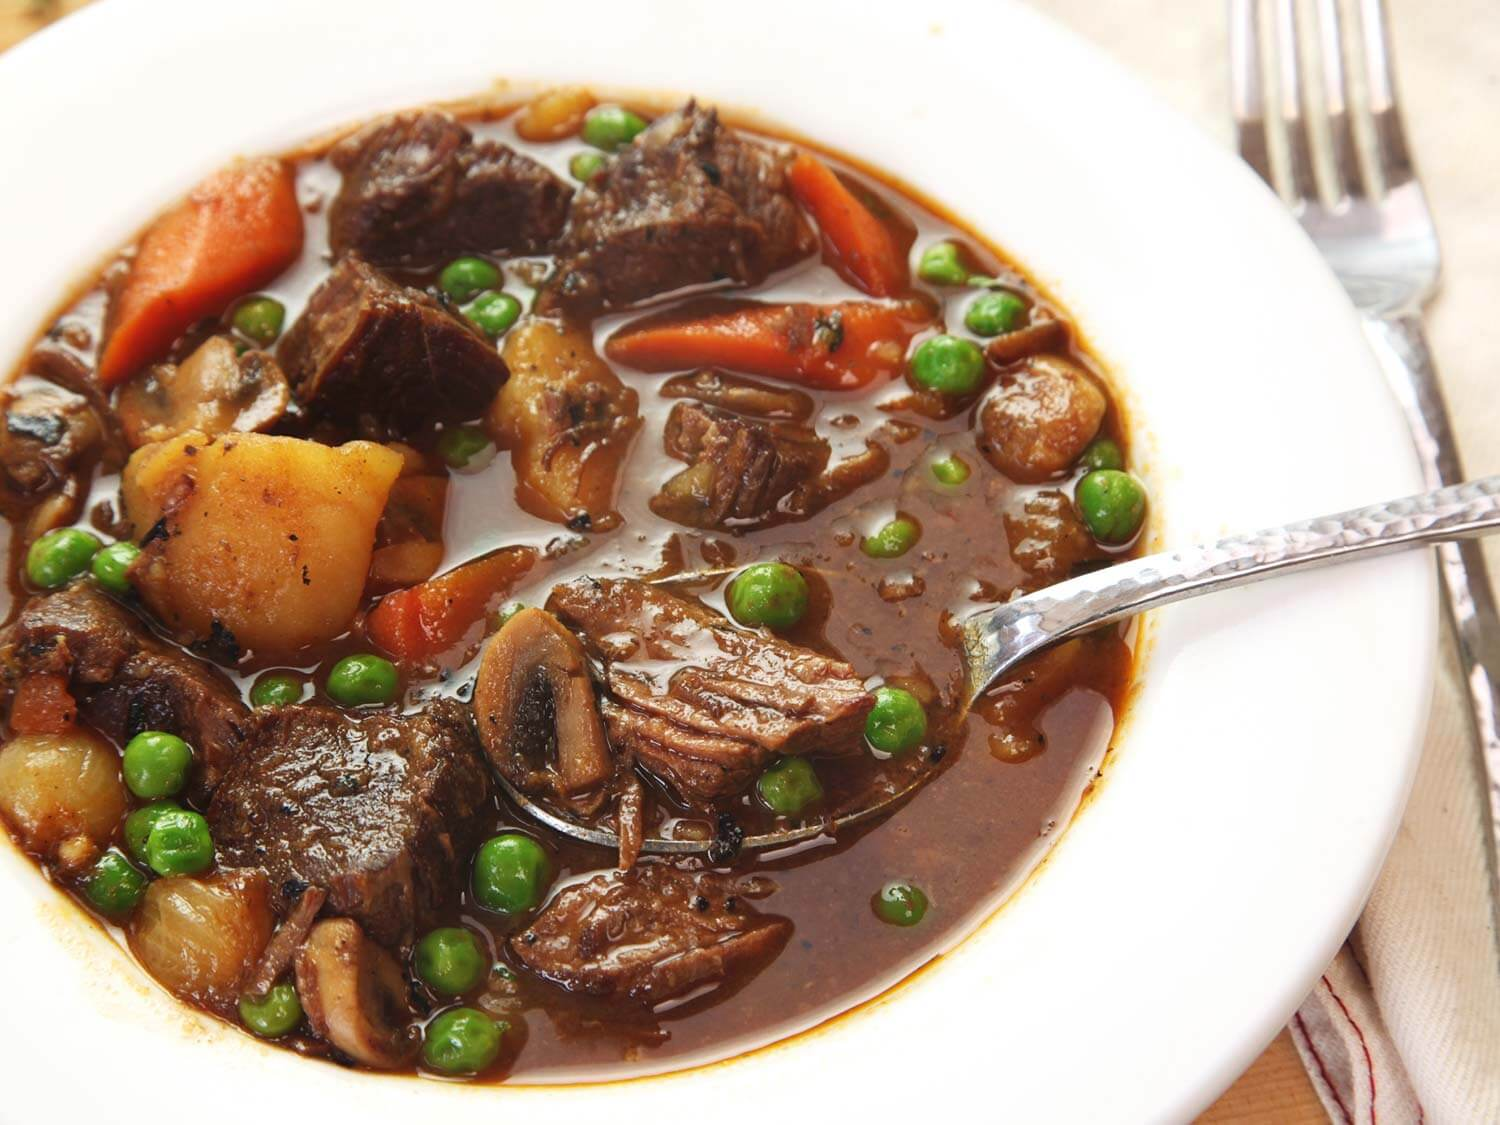 Delicious, warm beef stew